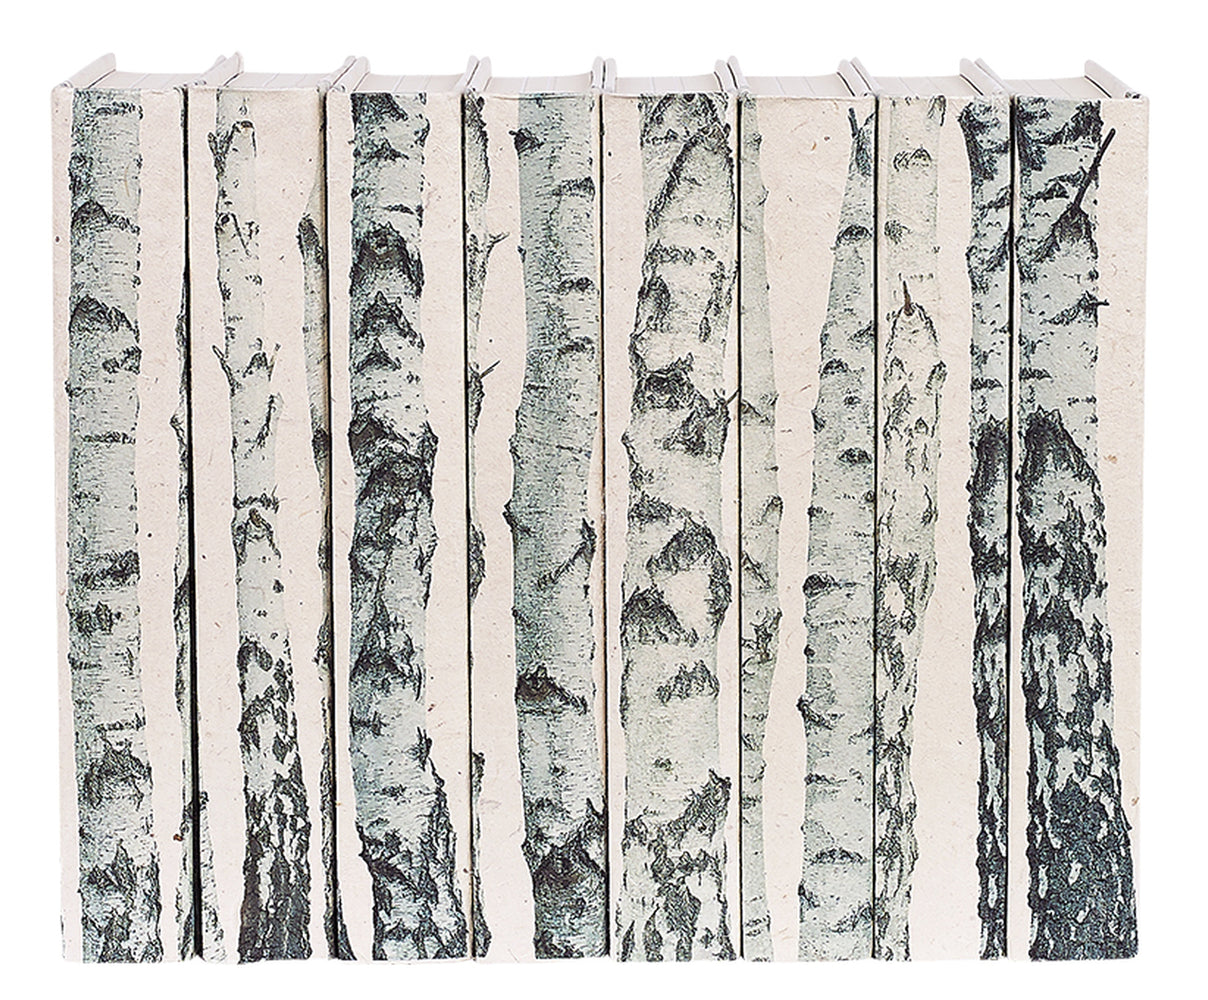 Birch Trees Decorative Books | E.Lawrence Ltd | Trovati Studio